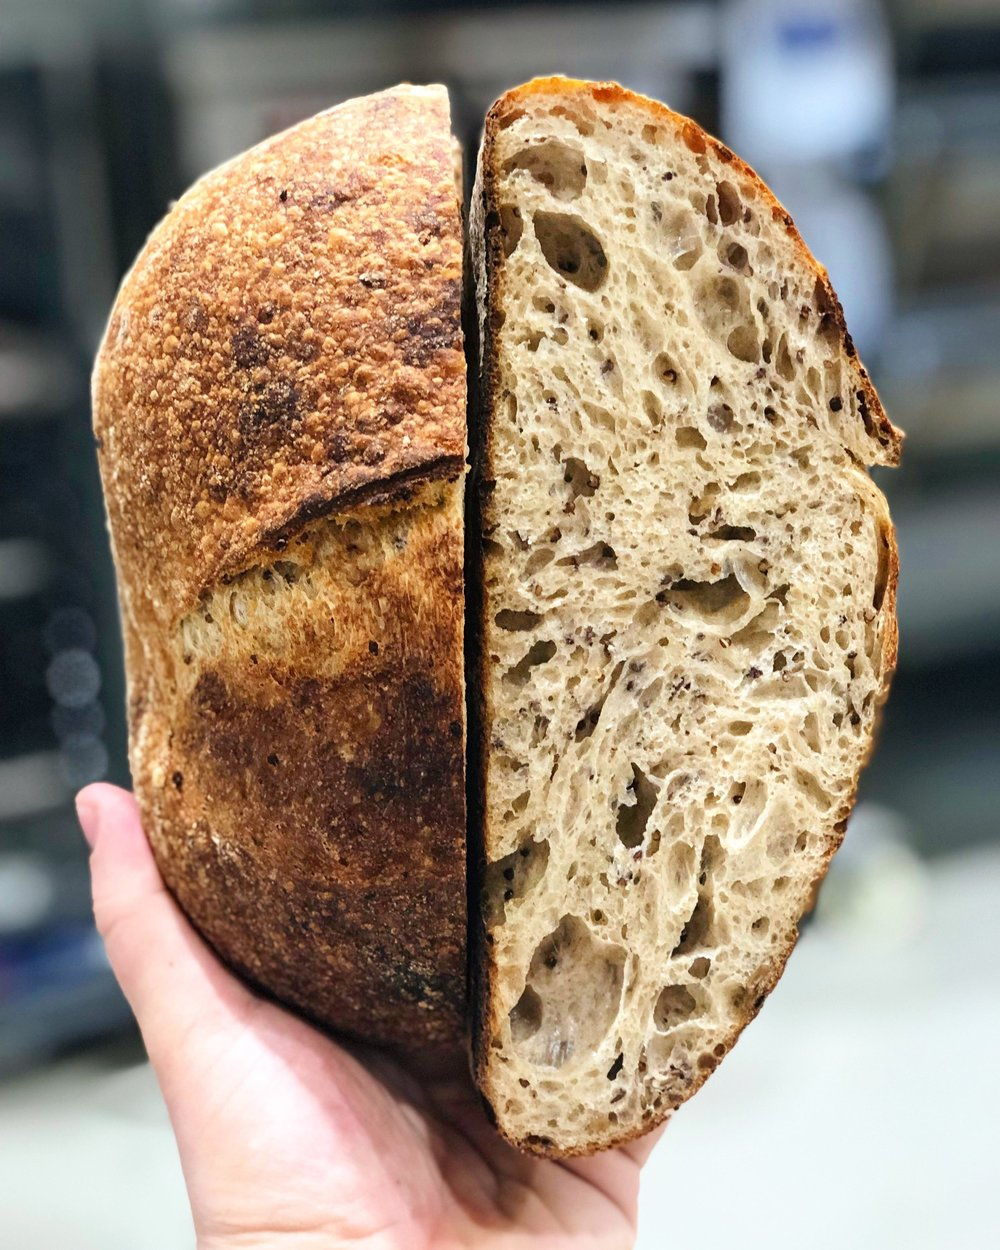 Handcrafted, naturally leavened breads and pastries. Utilizing carefully sourced ingredients, and mindful environmental practices. -